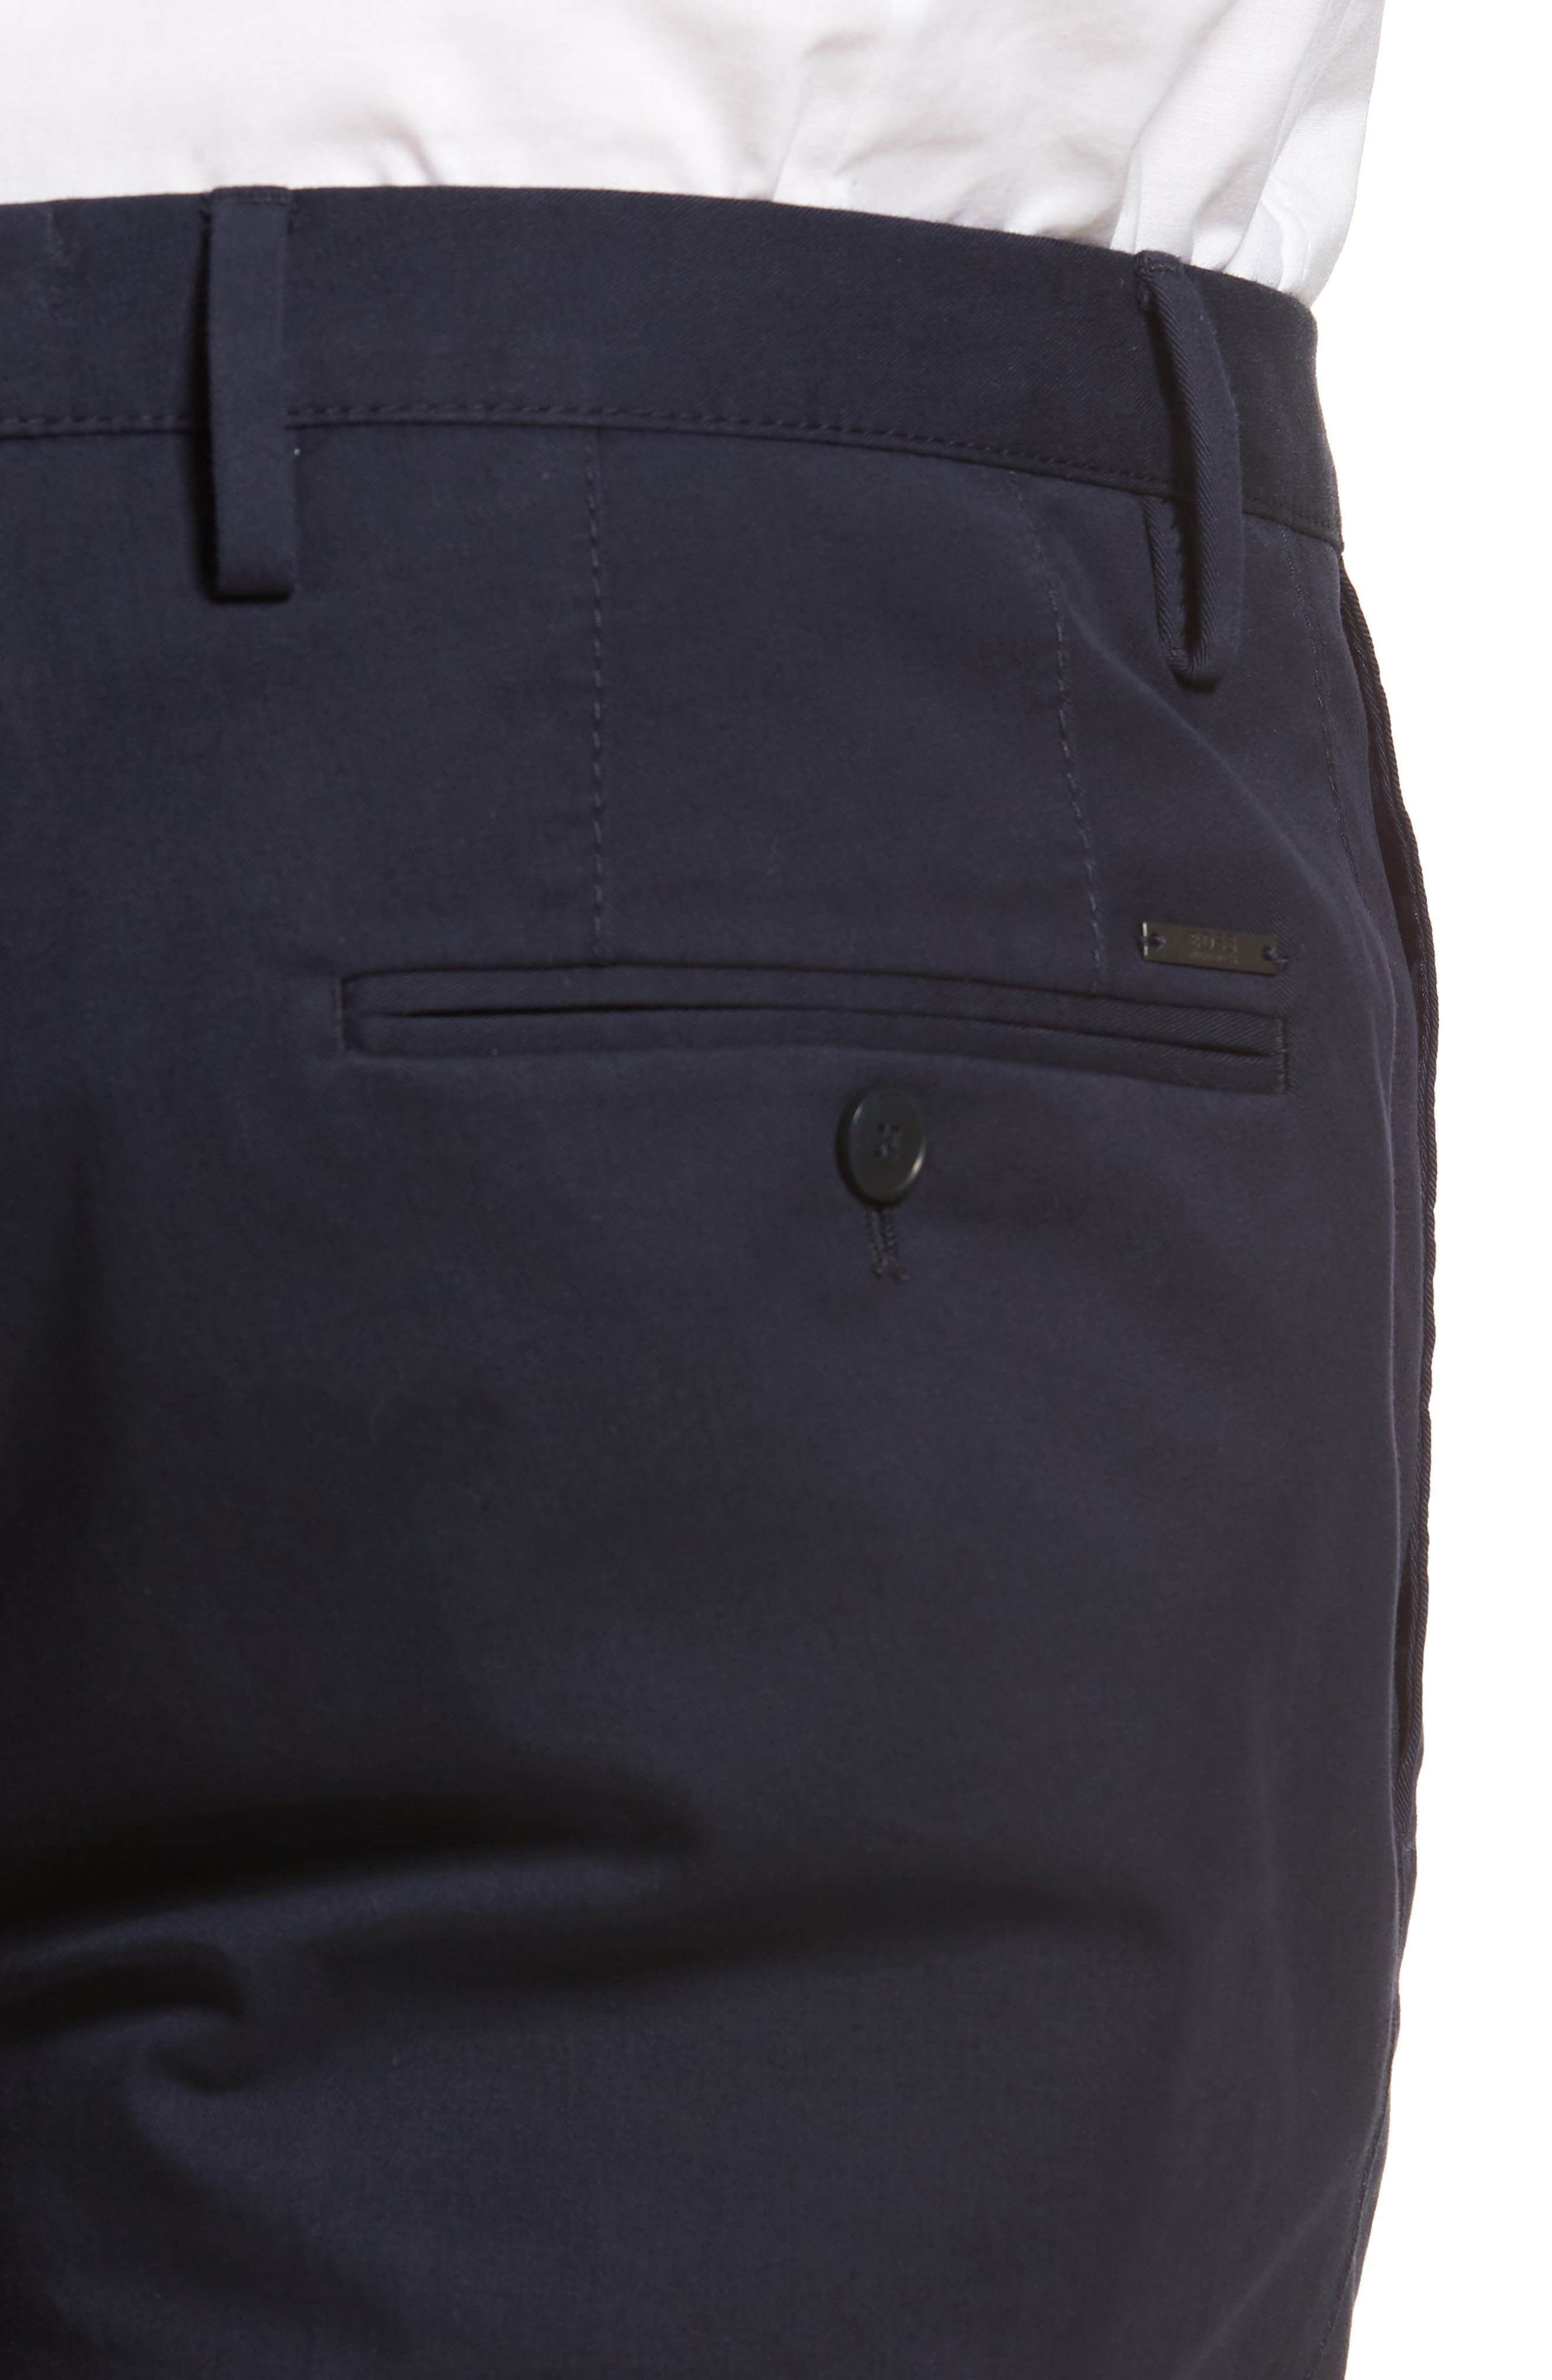 Stanino-W Flat Front Stretch Cotton Trousers,                             Alternate thumbnail 4, color,                             Navy